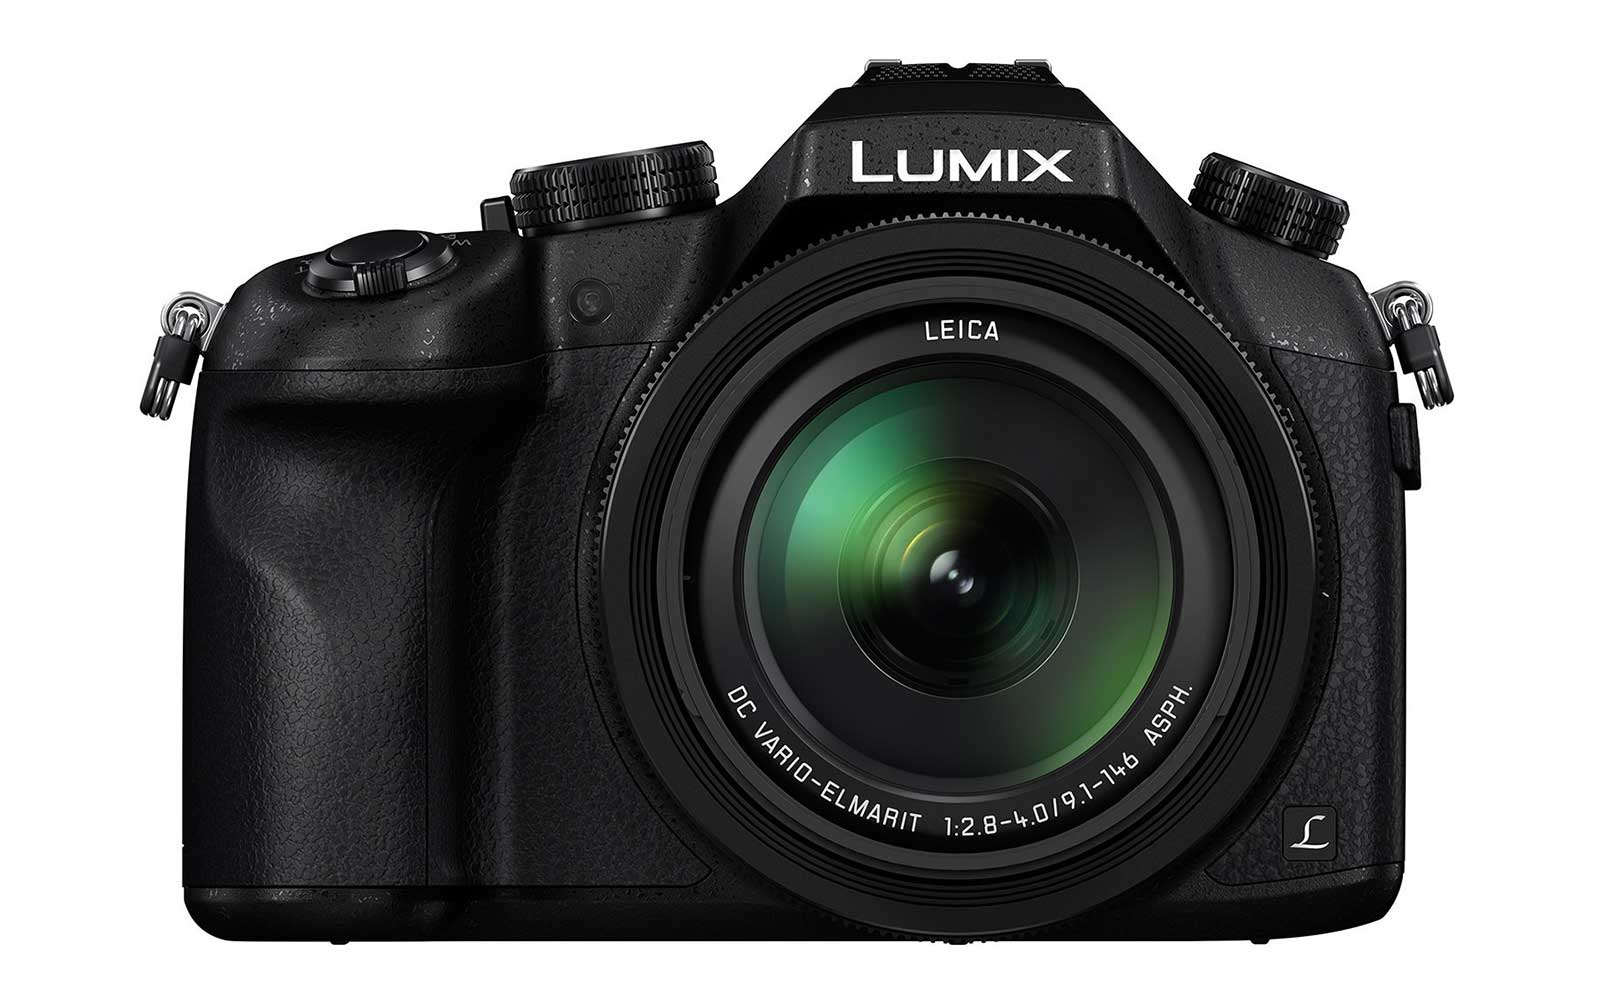 Lumix Camera for sale on Amazon